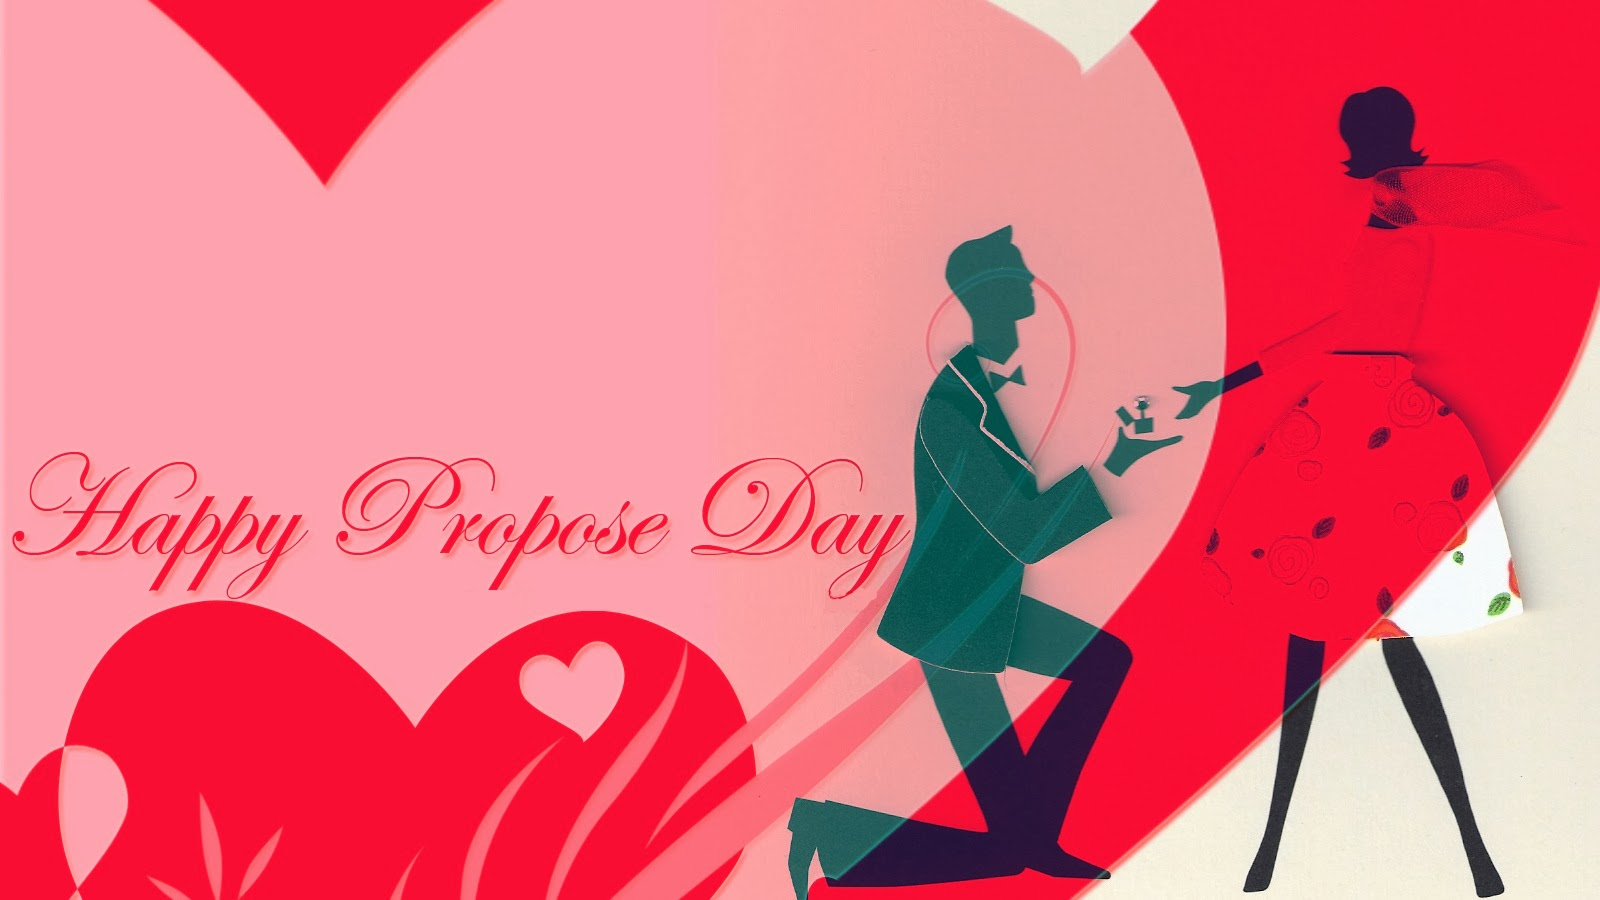 6-Propose Day Wishes